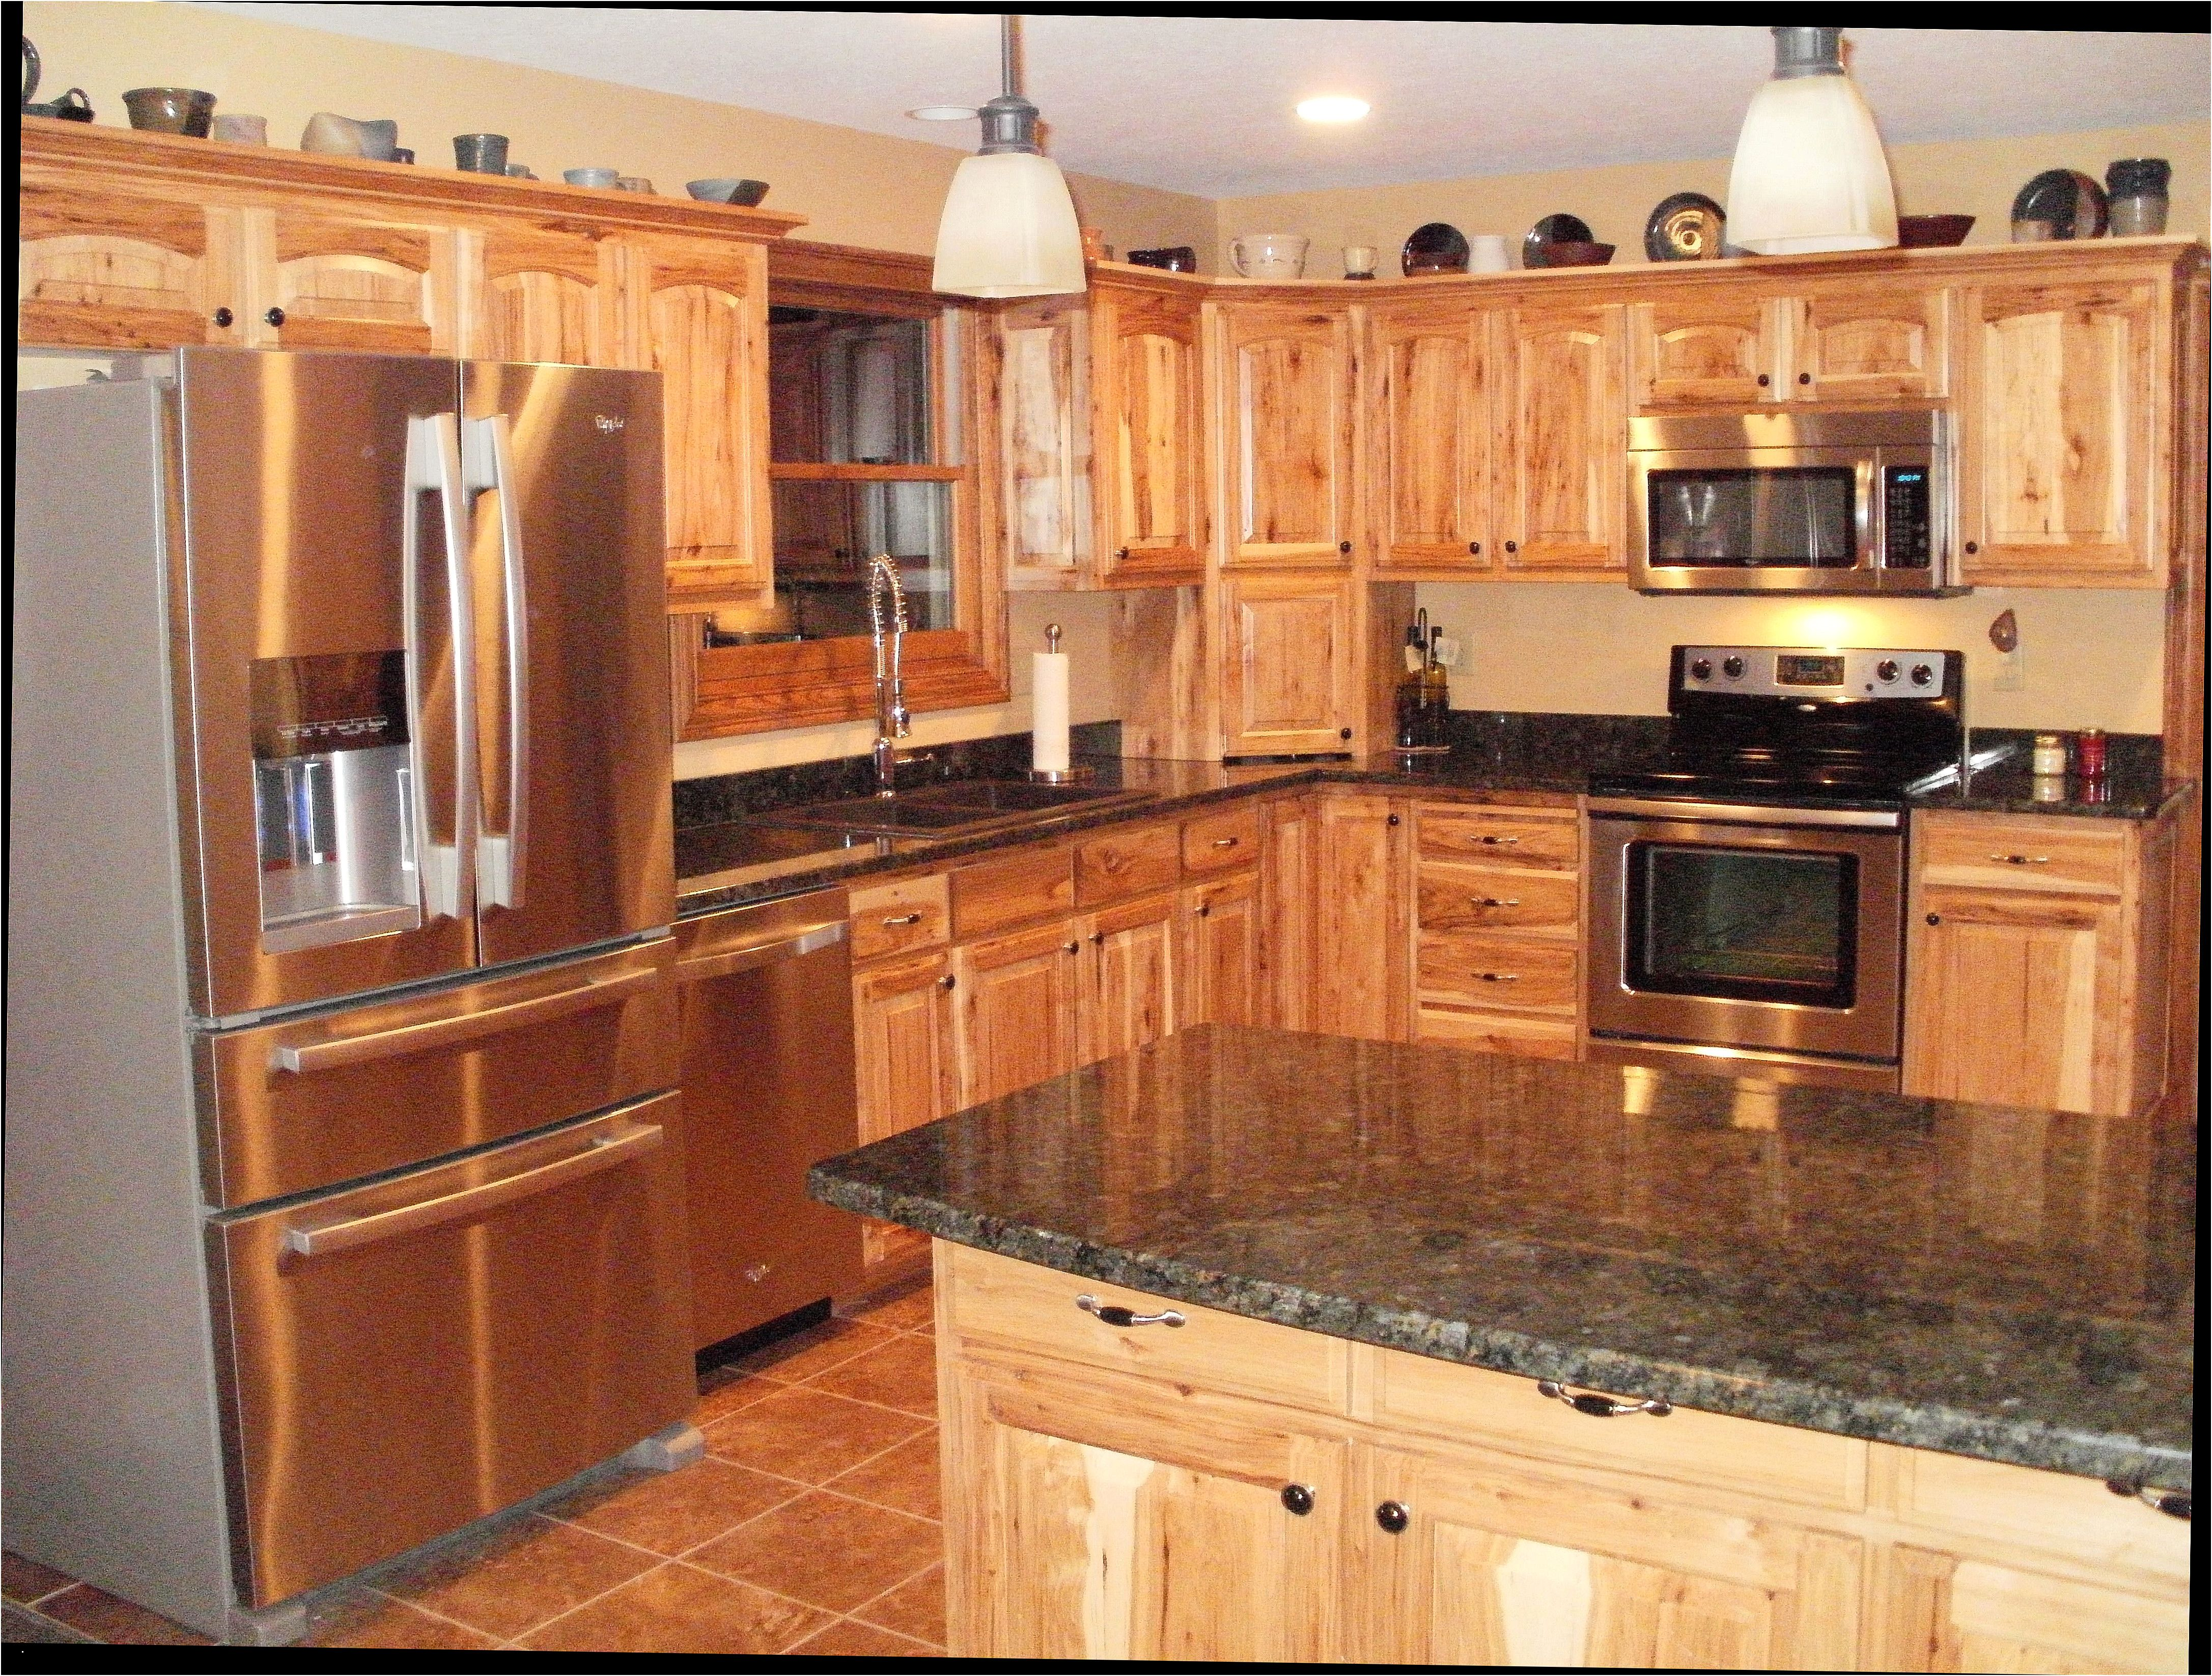 Lovely Kitchen Color Ideas With Hickory Cabinets In 2020 Hickory Kitchen Cabinets Hickory Kitchen Kitchen Remodel